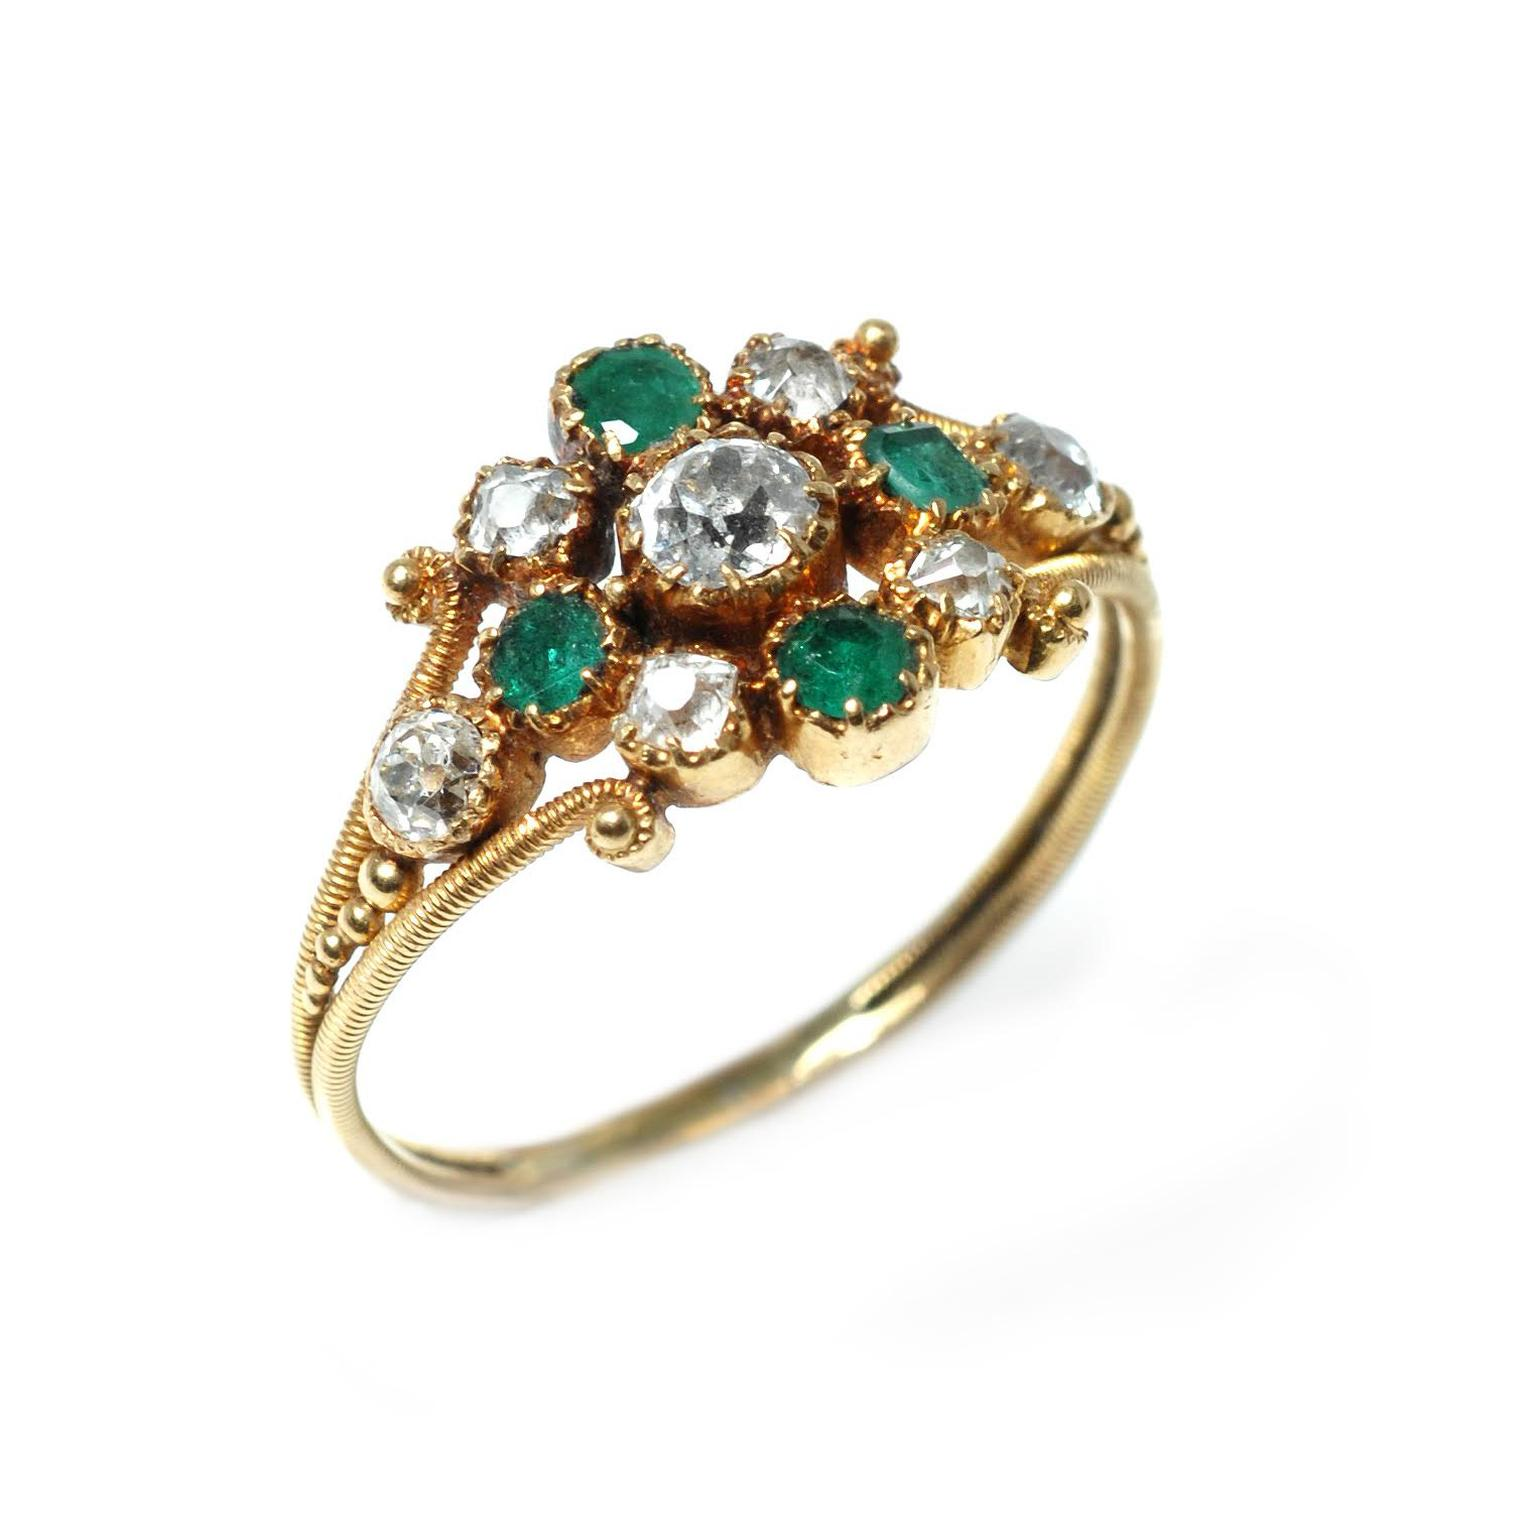 Trivette Georgian emerald and diamond cluster ring